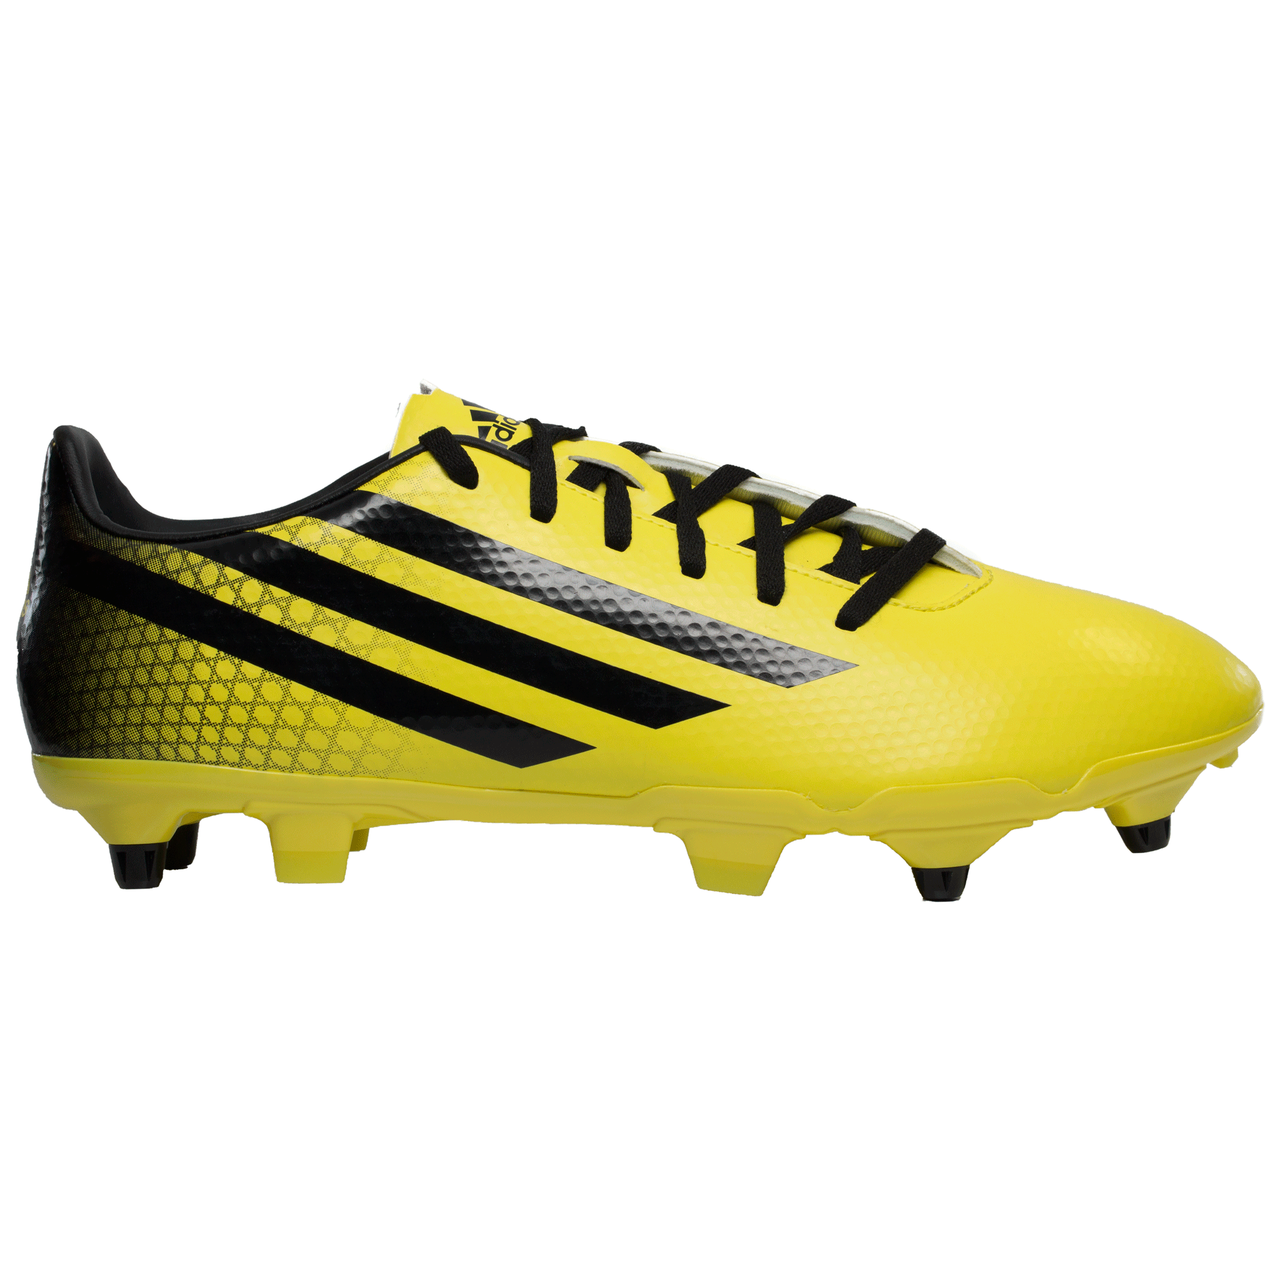 CrazyQuick CQ Malice SG Rugby Boots